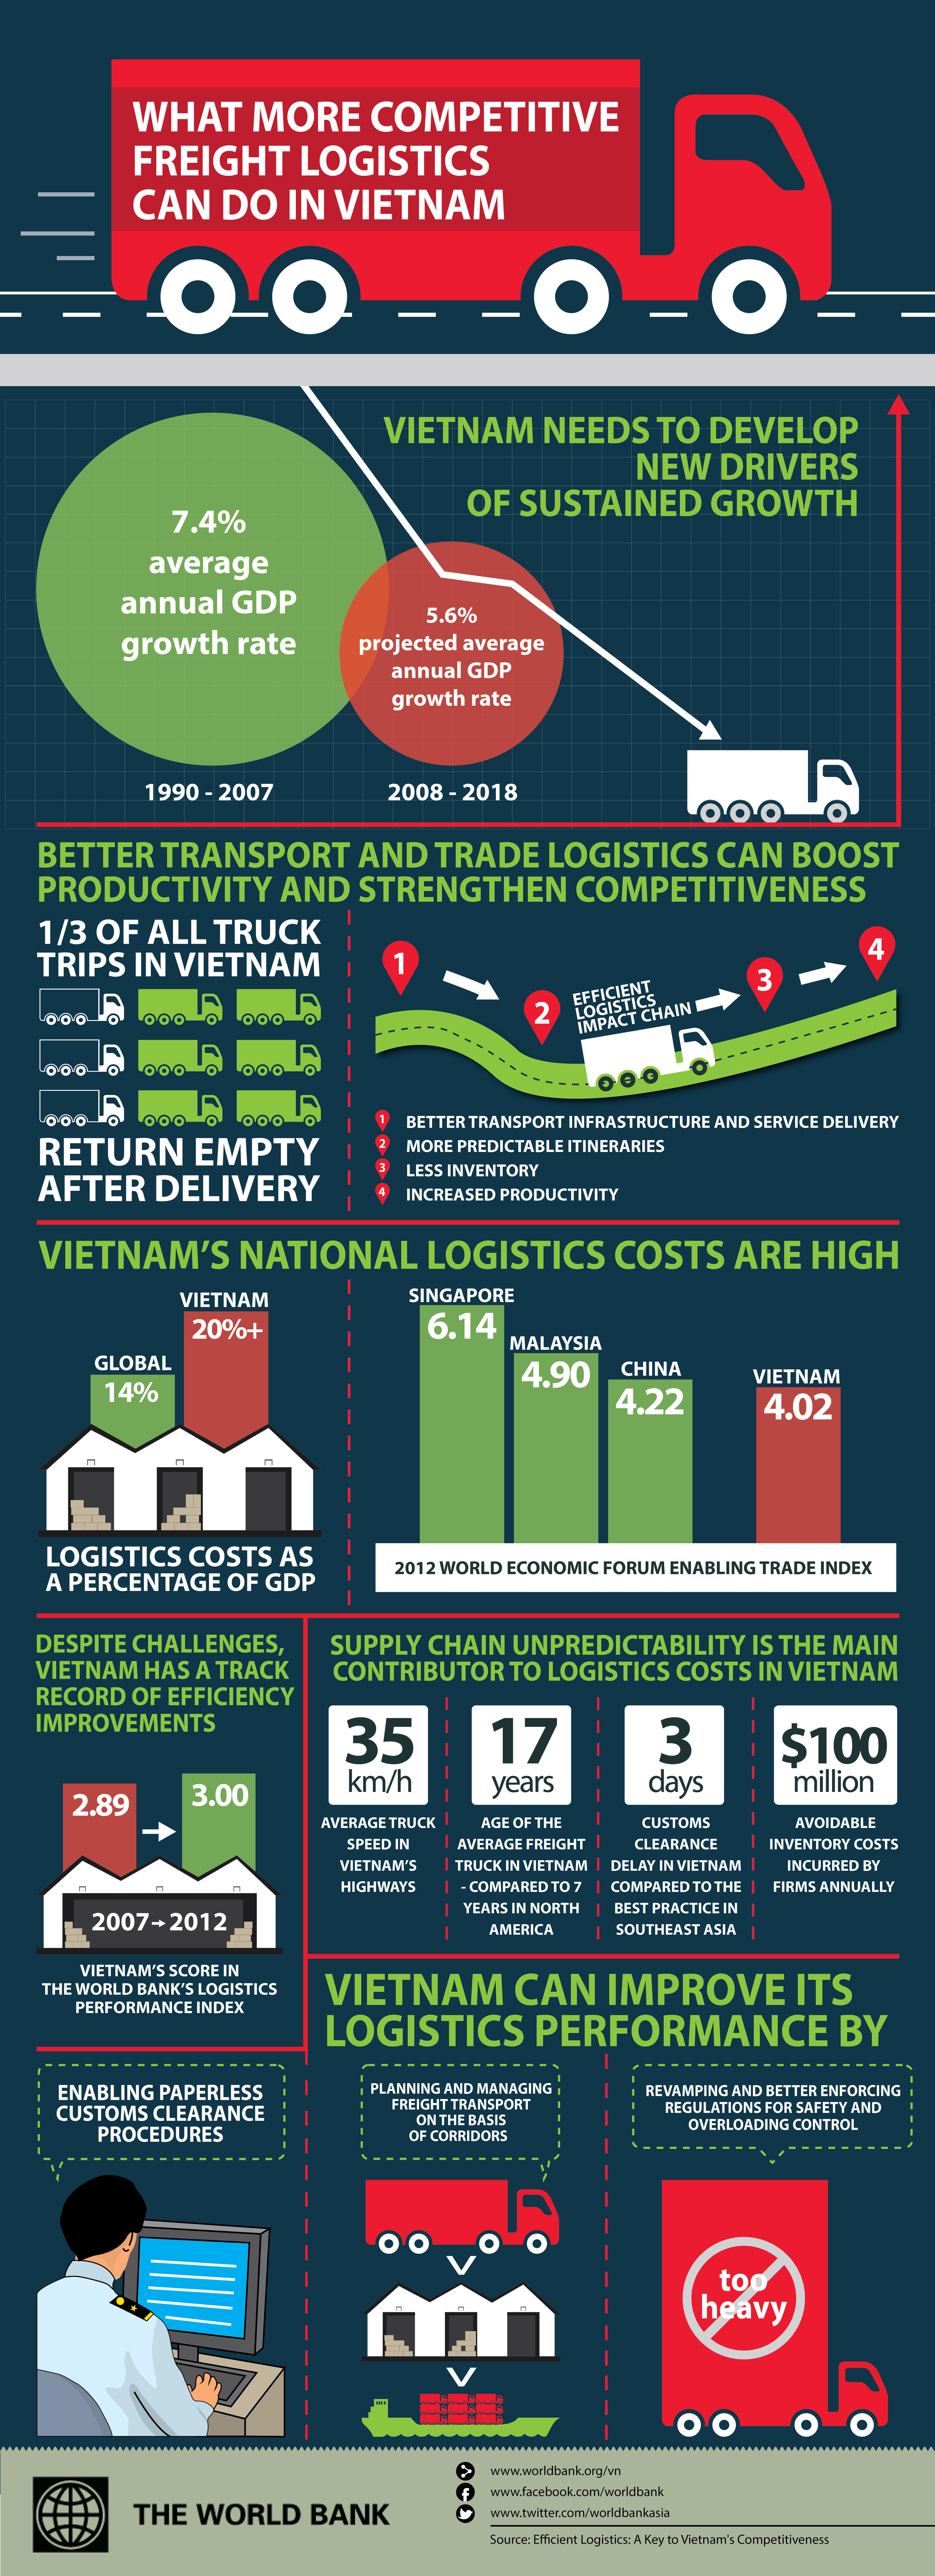 logistics in vietnam Efficient logistics : a key to vietnam's competitiveness (english) abstract vietnam has achieved sustained economic growth, primarily driven by a rapidly expanding labor force and a shift in economic activity away from low-productivity subsistence agriculture toward the higher-productivity manufacturing and services sectors.